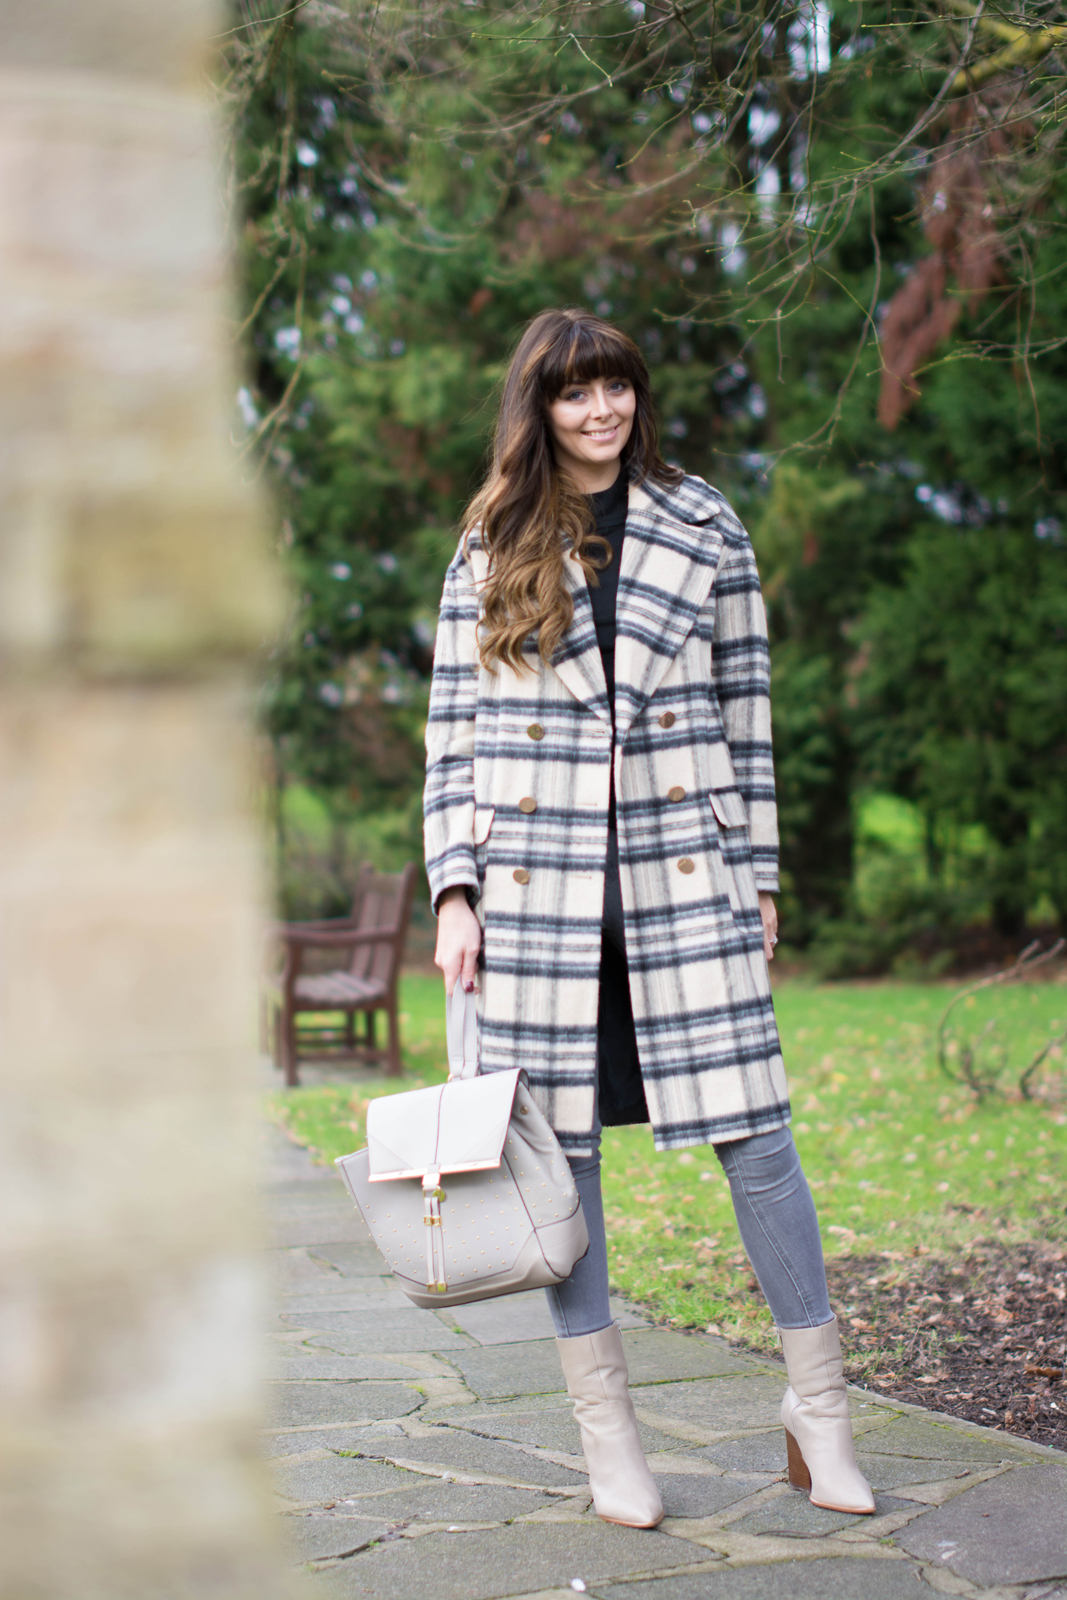 EJSTYLE - River Island brushed check coat, grey skinny jeans, black jumper, taupe M&S boots with pointed toe, Grey backpack rucksack, Winter OOTD outfit, fashion blogger